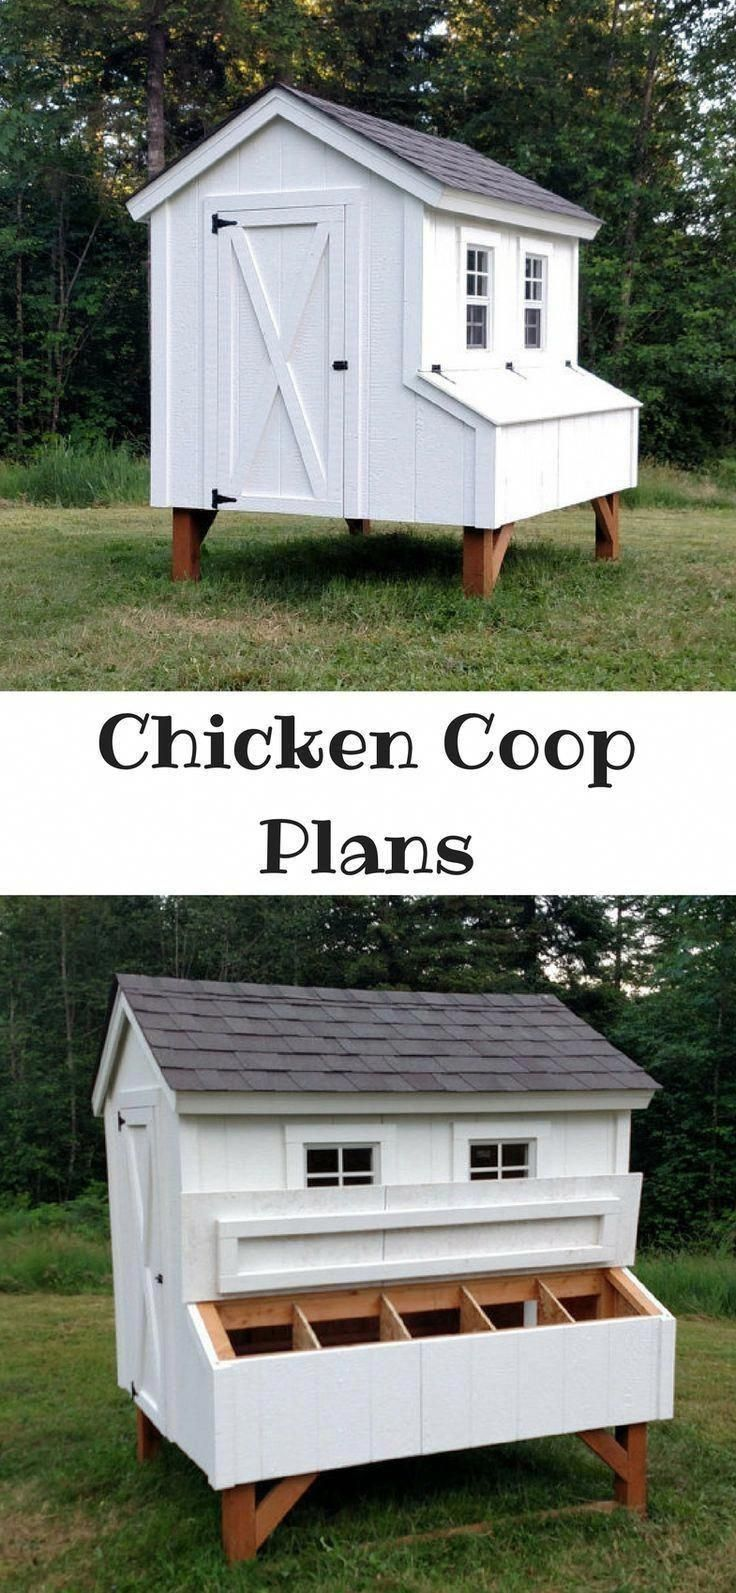 Chicken Coop Beautiful And Functional Chicken Coop For Your Urban Back Yard Or Your Modern Hom Portable Chicken Coop Cute Chicken Coops Urban Chicken Farming